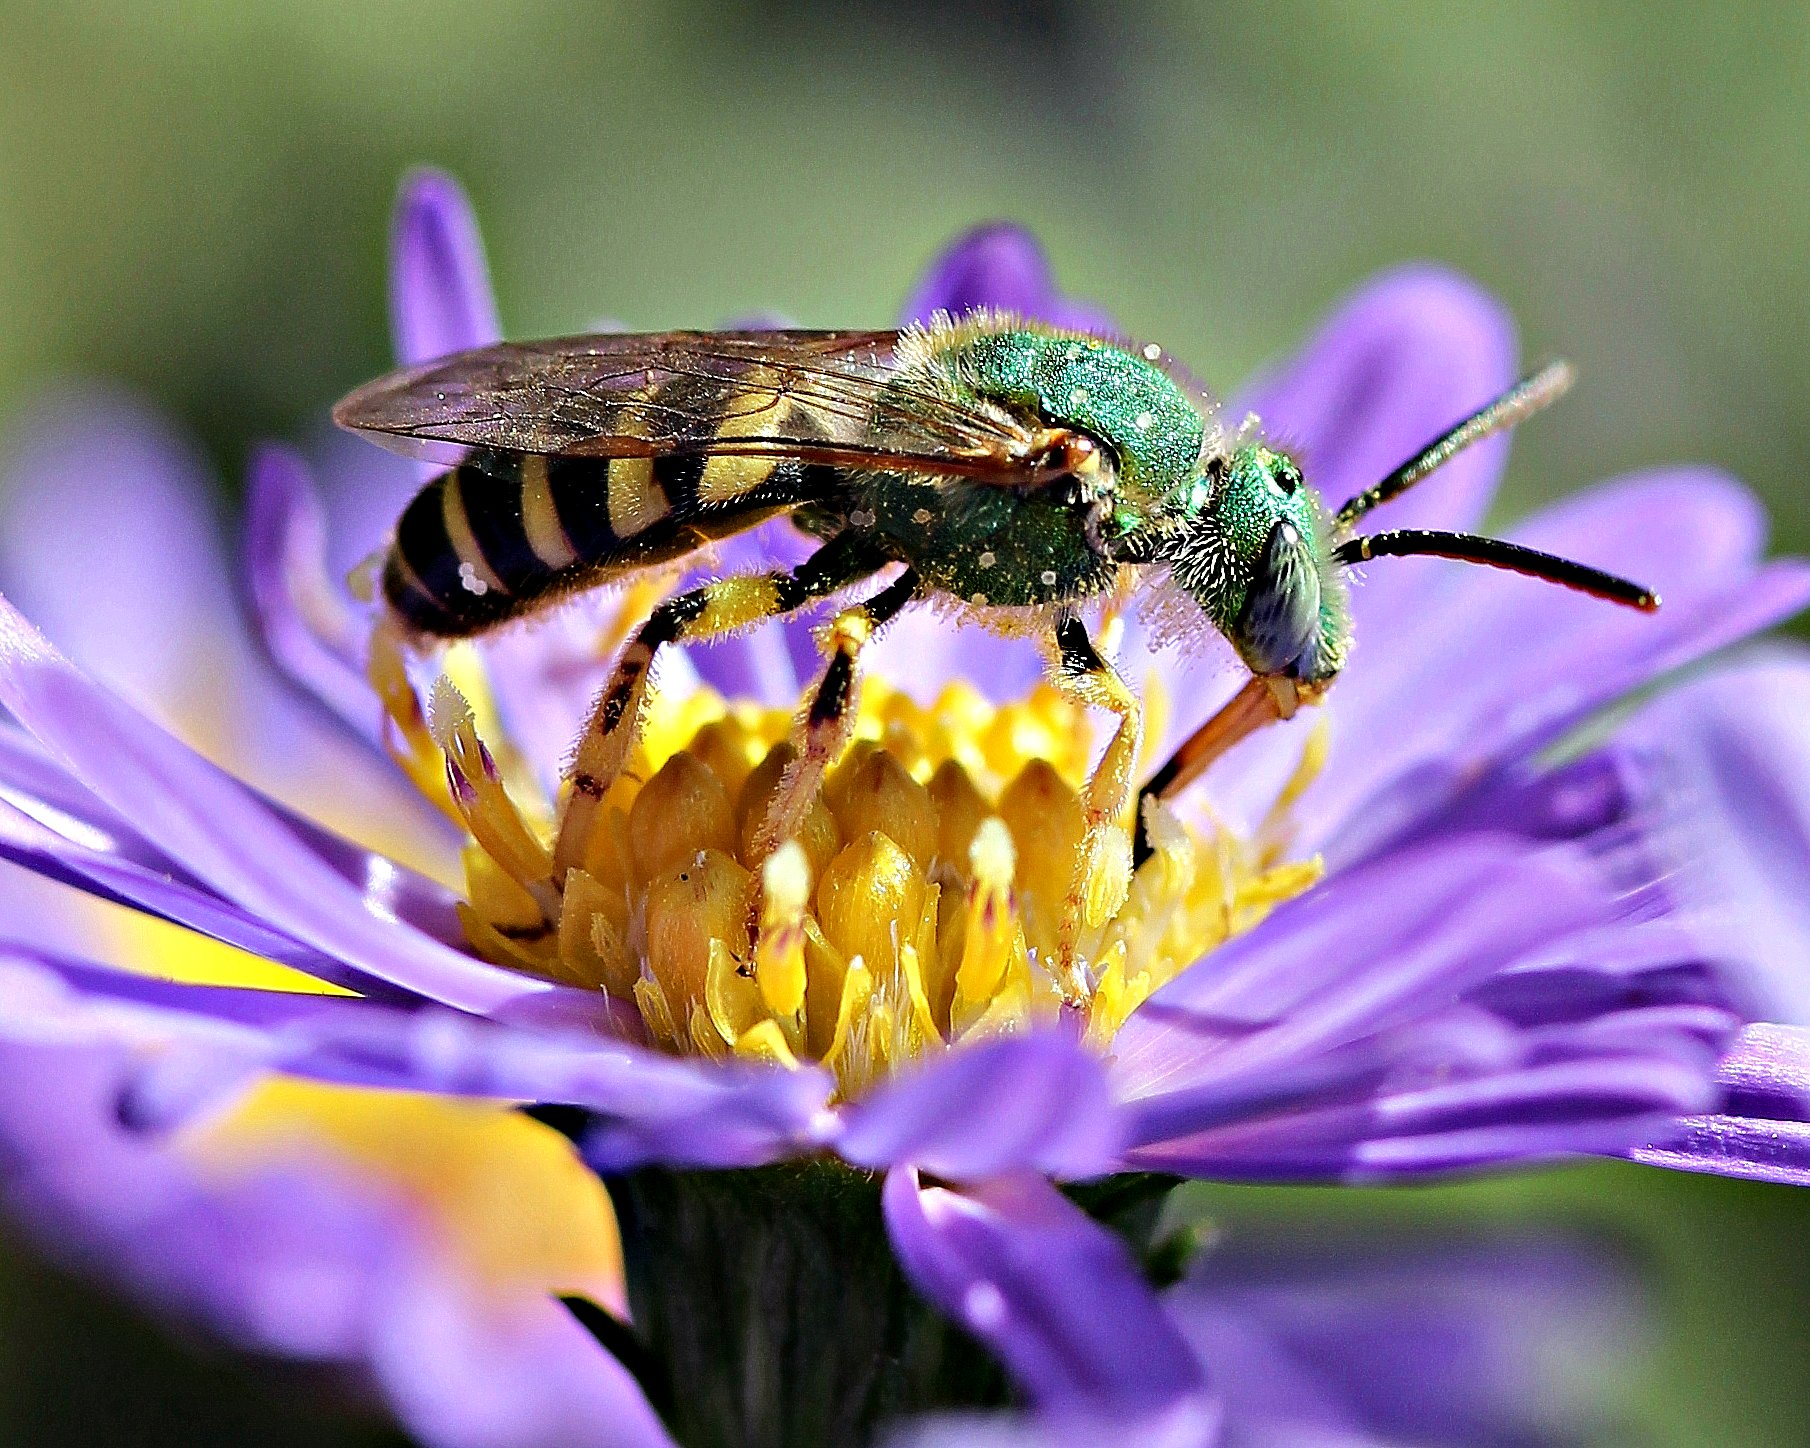 Sweat bees are one of the more obscure pollinator species that NatureServe believes need more scientific scrutiny. Photo by Patty O'Hearn Kickham